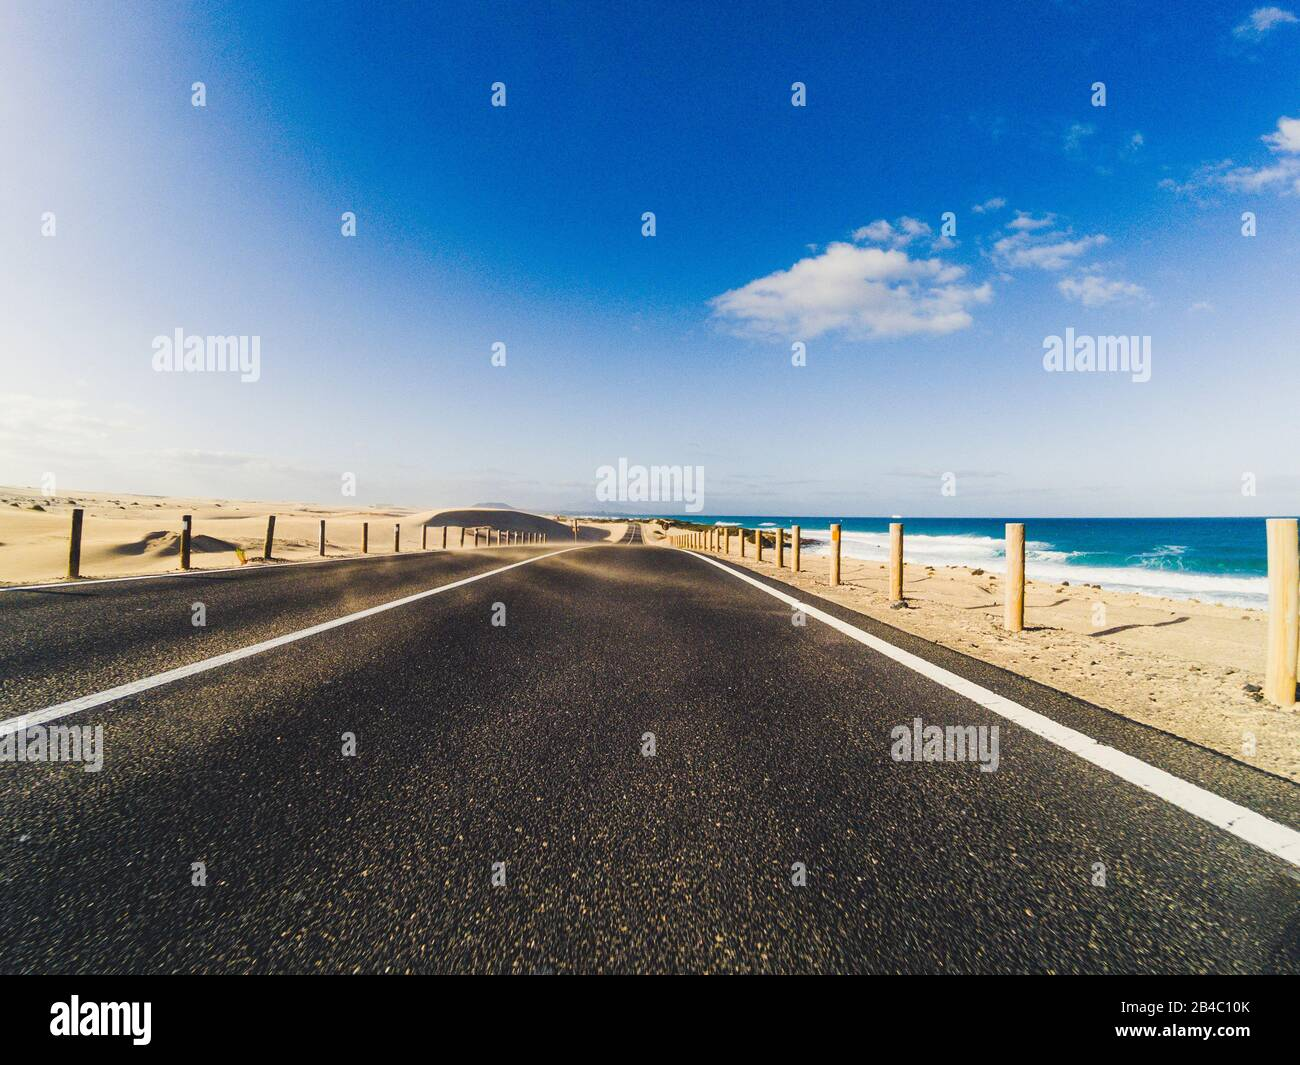 Long way road for travel car transportation concept with desert and beach on the side - sea water and blue clear beautiful sky in background - motion effect Stock Photo